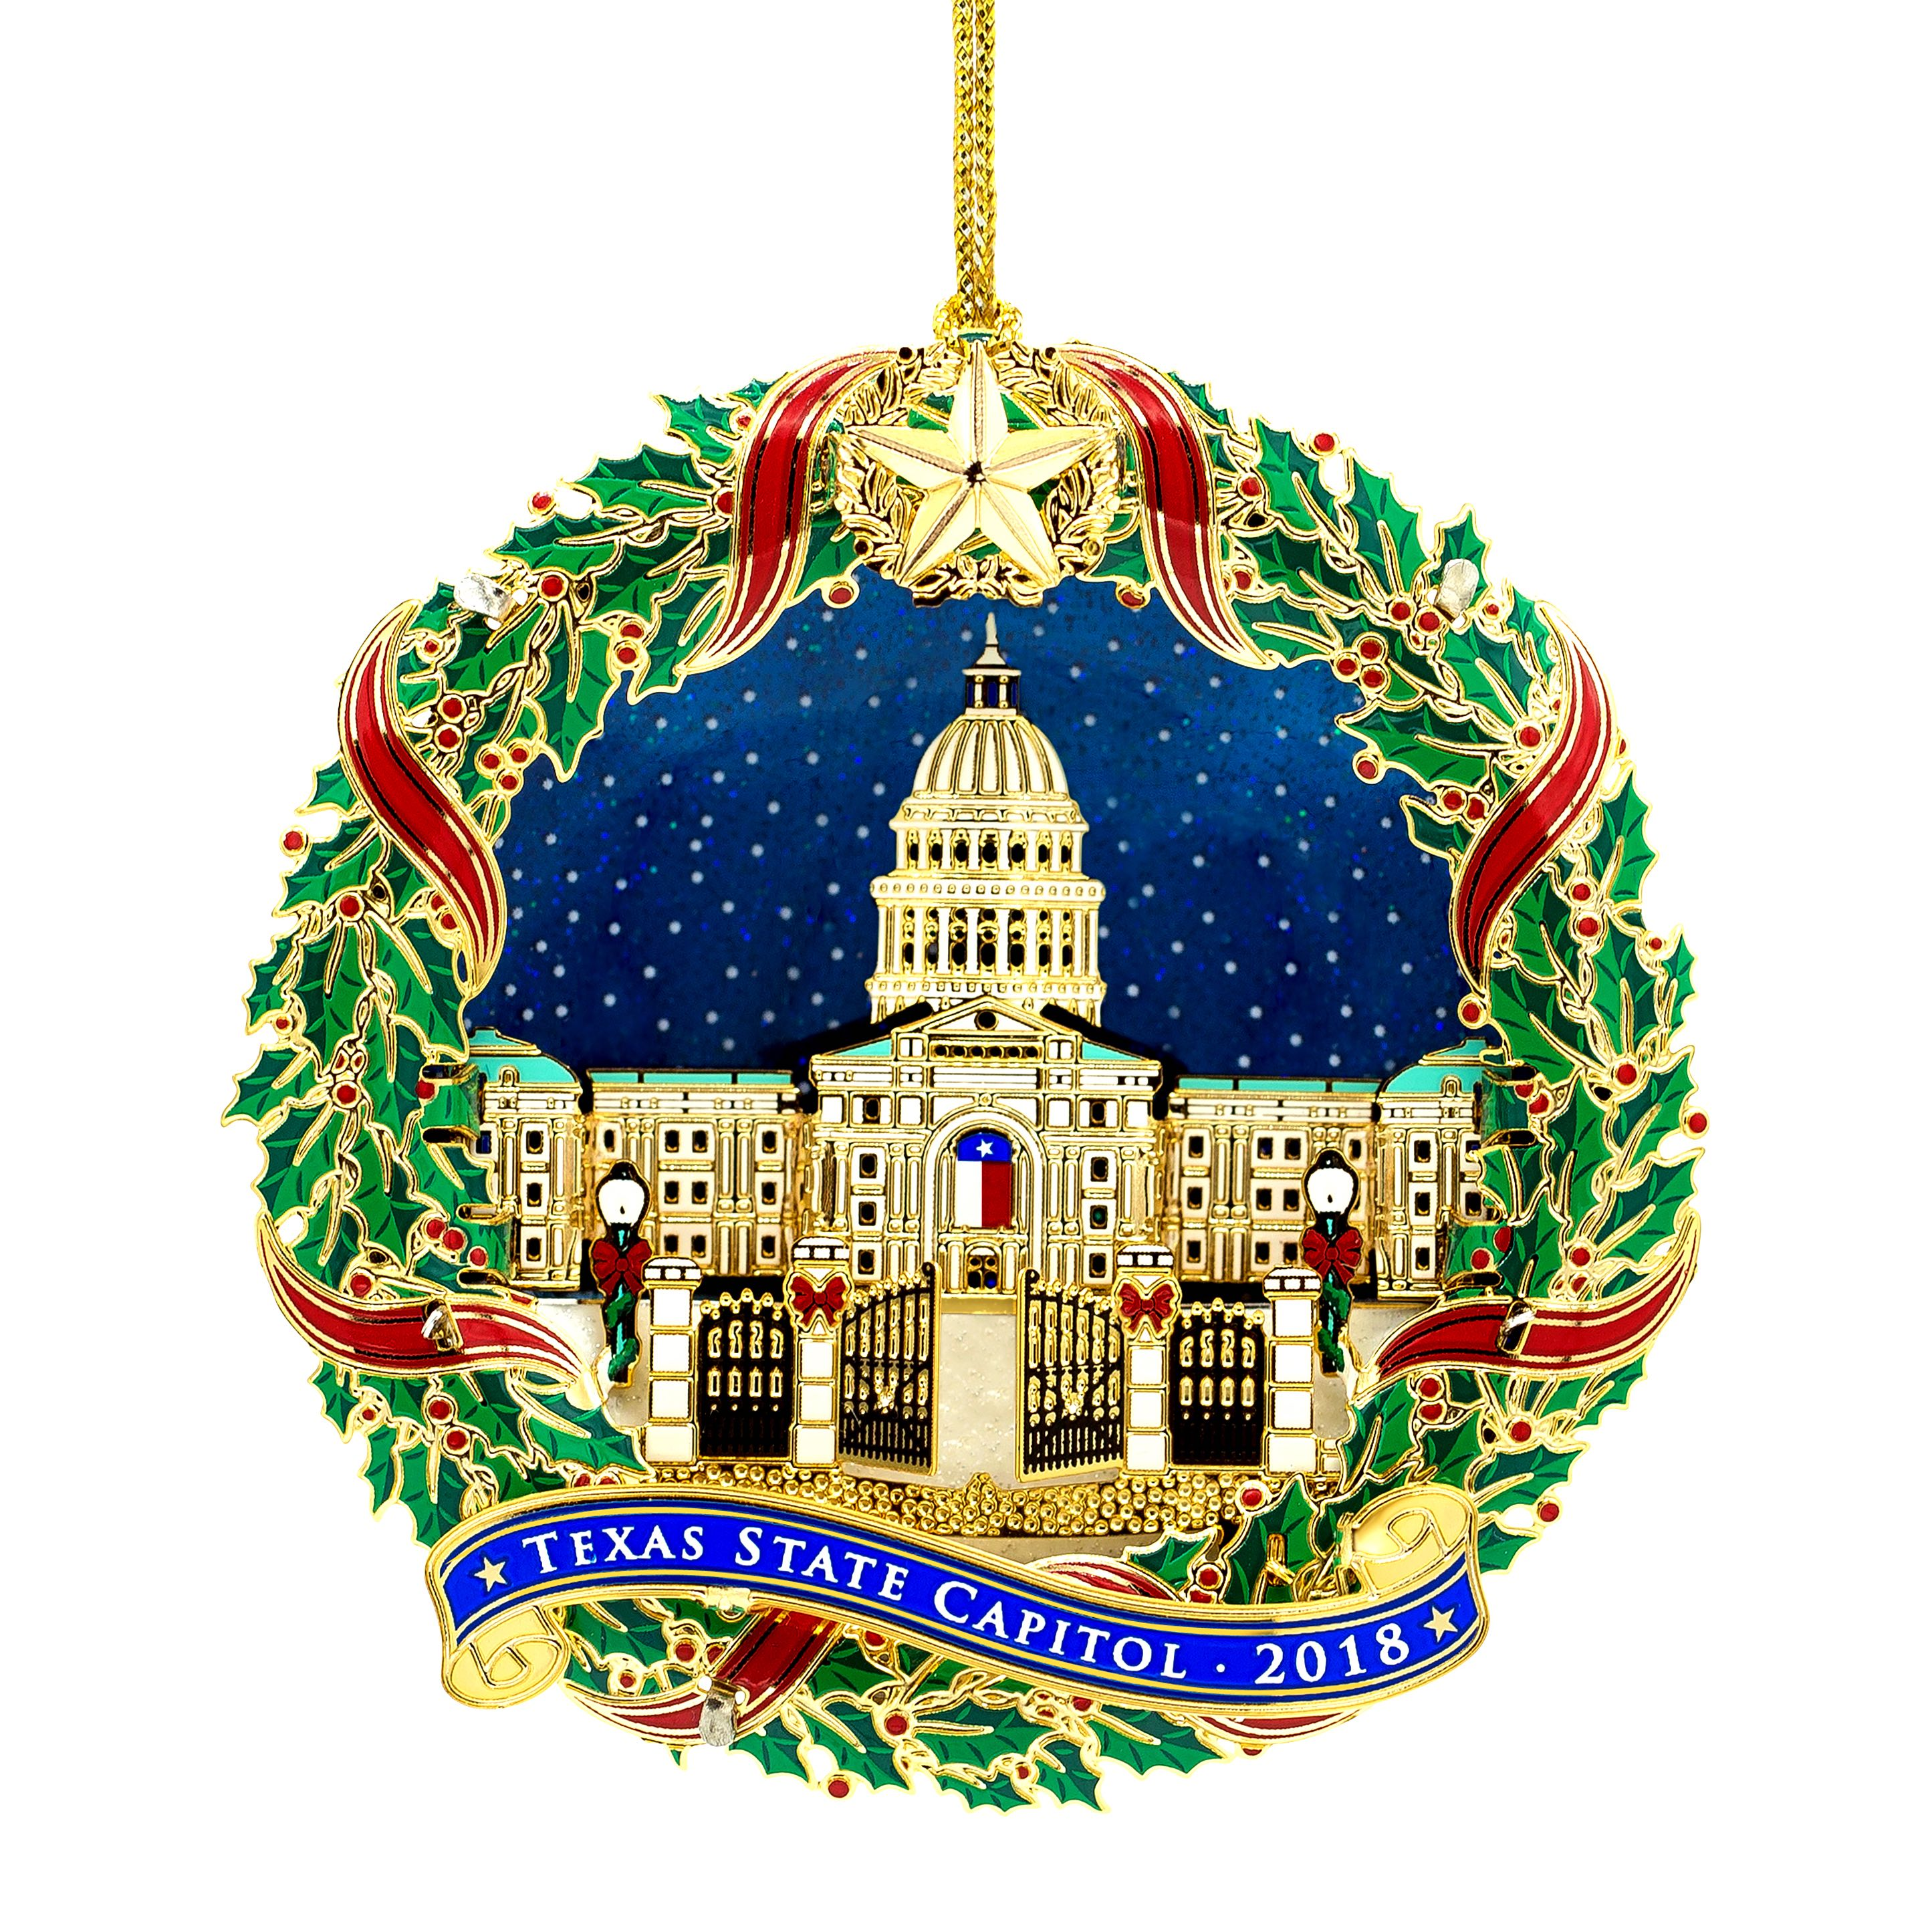 Texas State Capitol Reveals 23rd Annual Commemorative ...